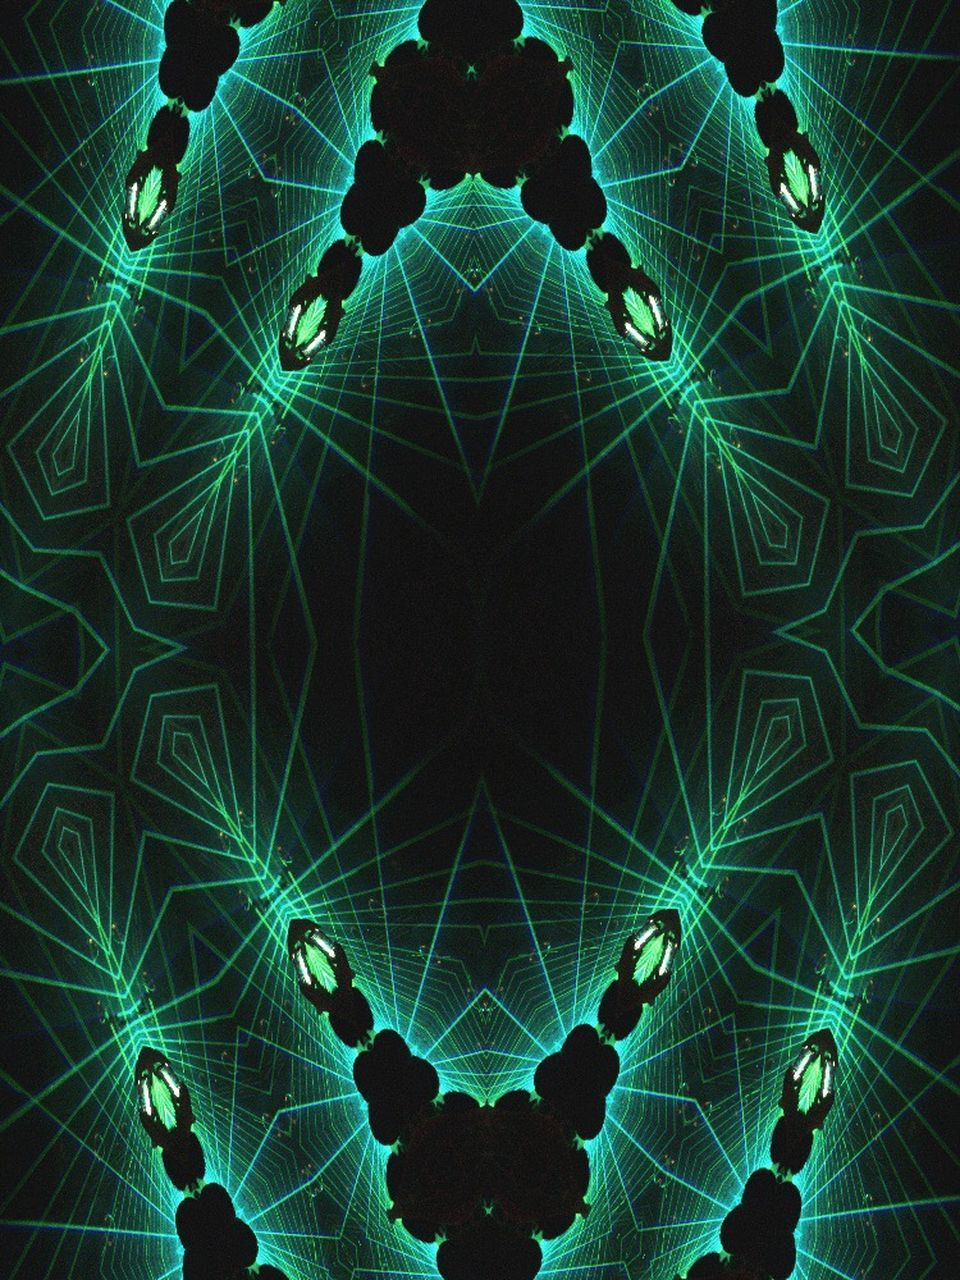 pattern, green color, illuminated, abstract, symmetry, real people, night, cyberspace, outdoors